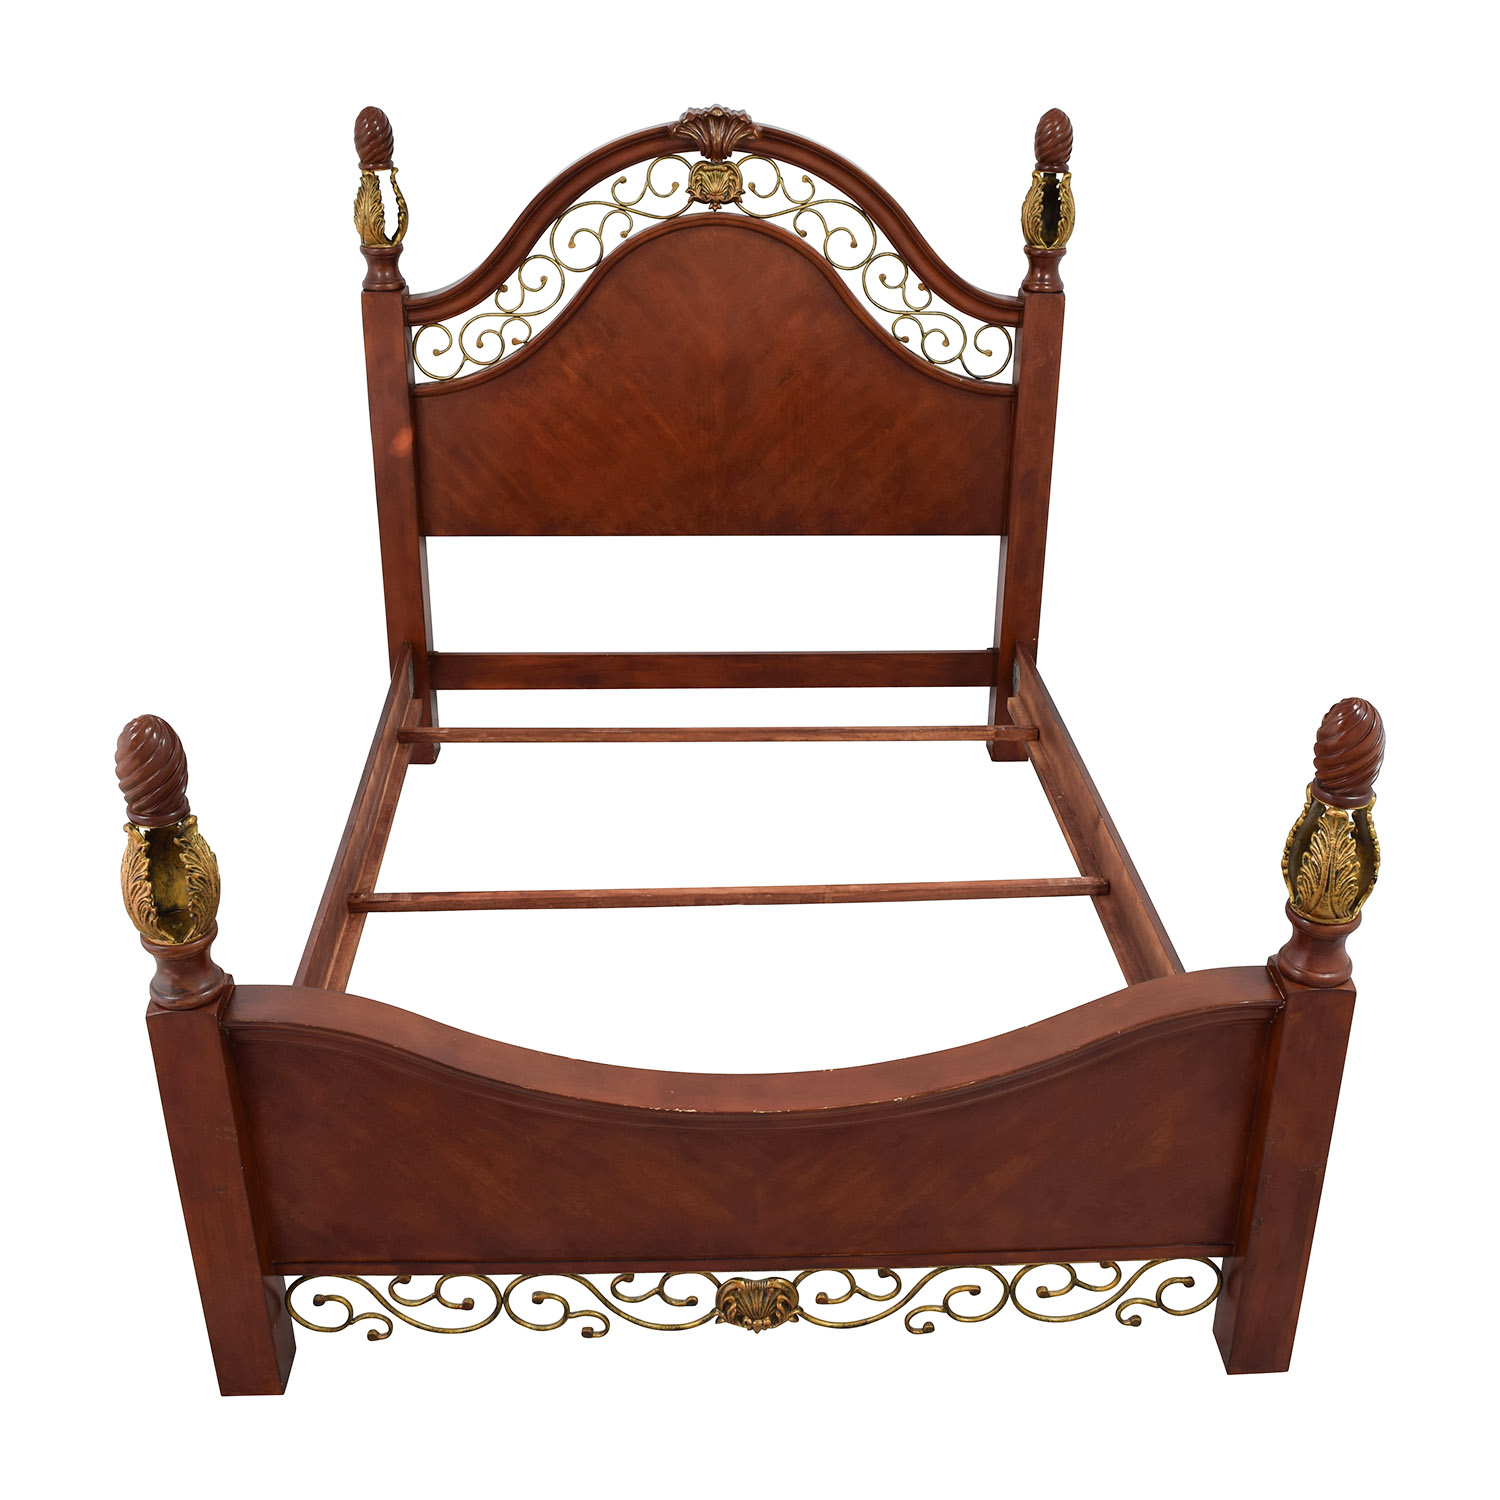 Unique Ornate Wood and Metal Queen Size Bed